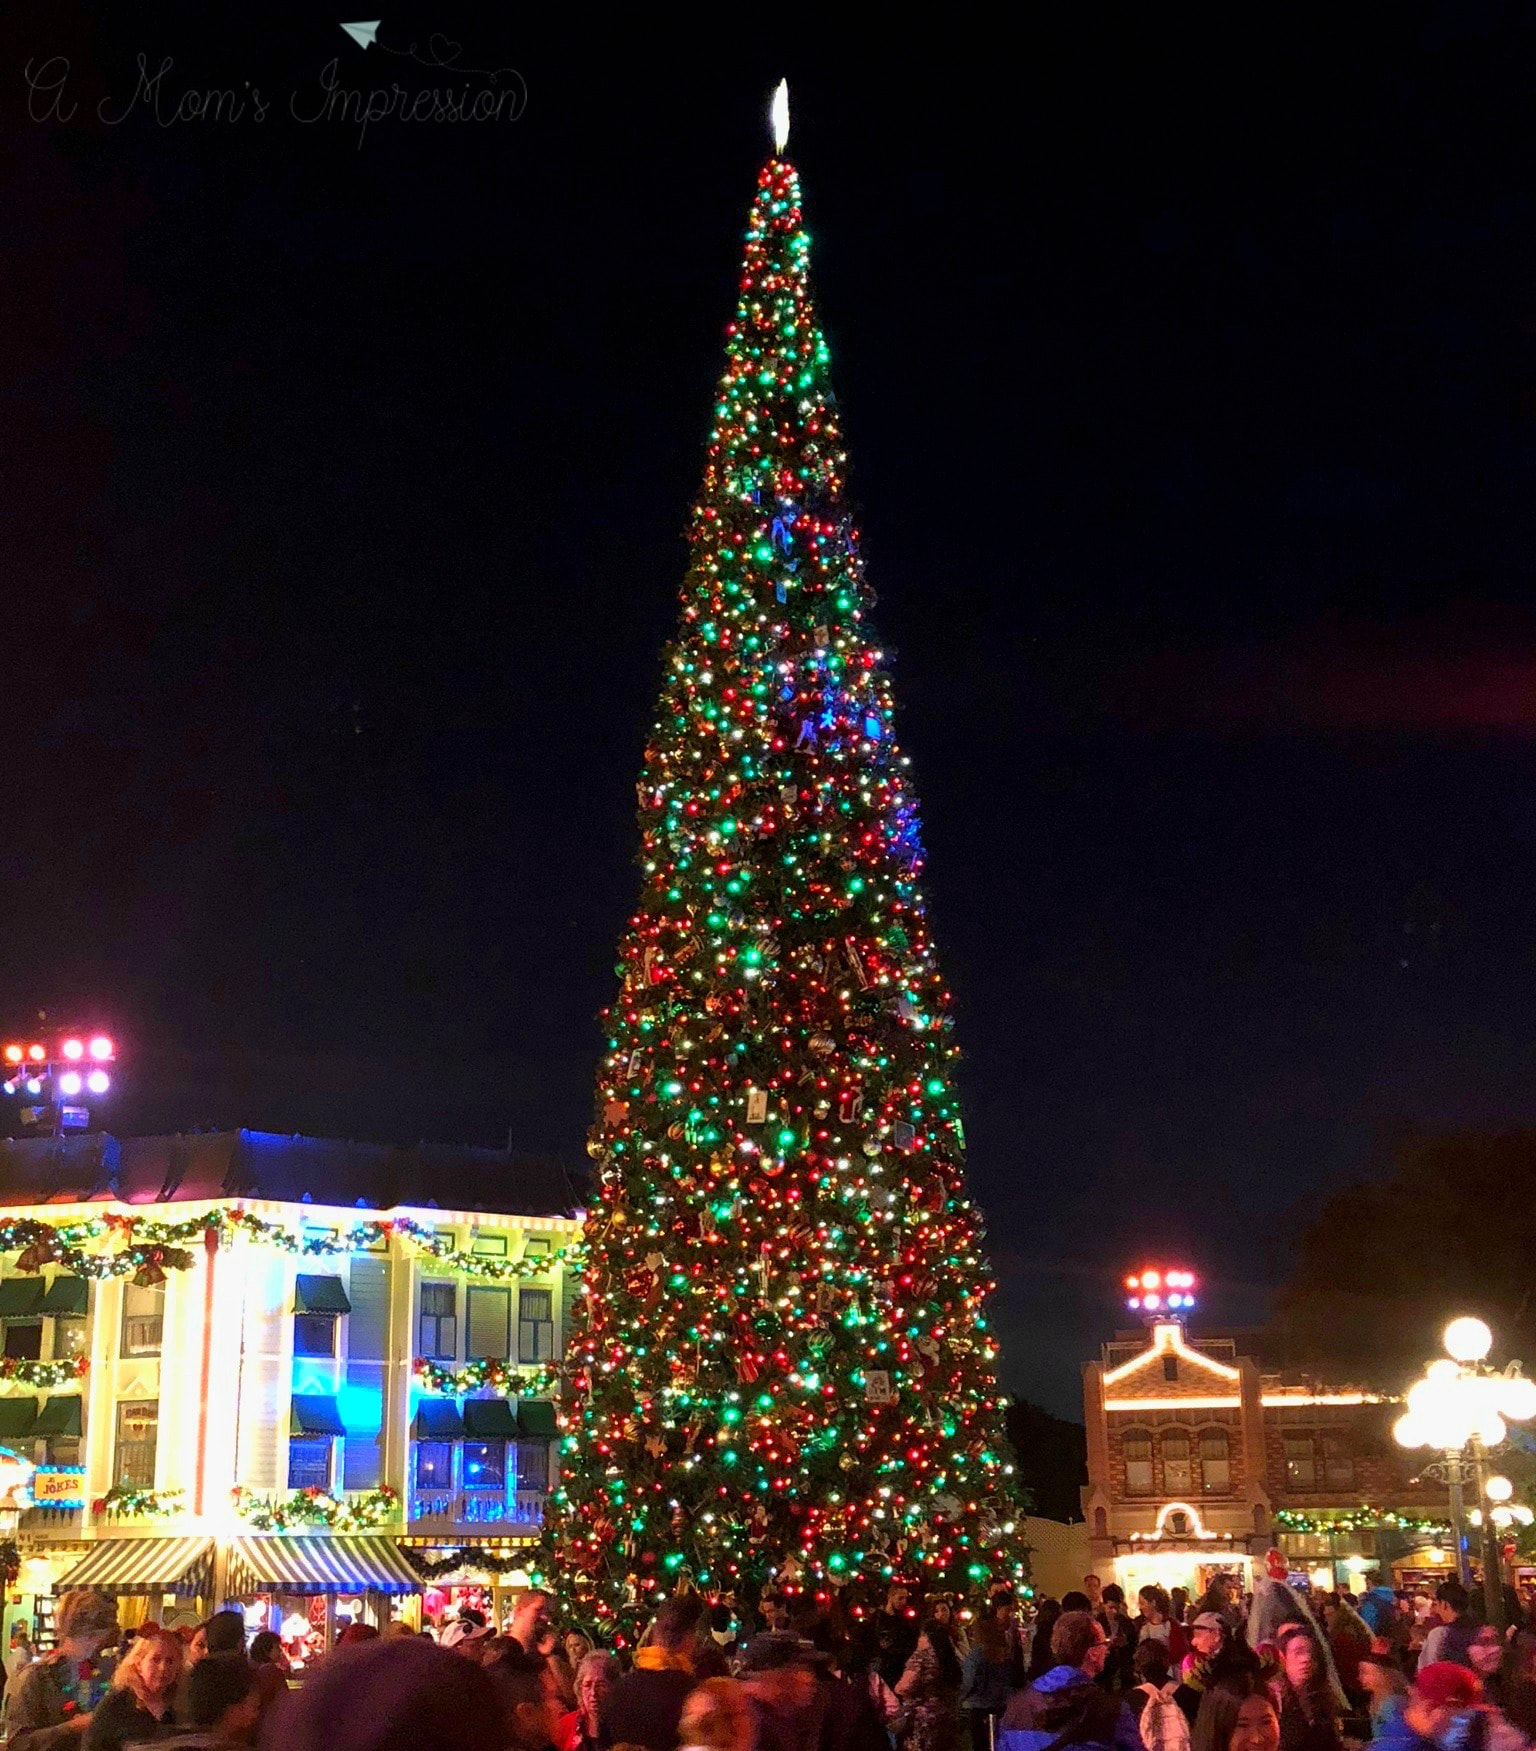 disneyland christmas decorations christmas tree - Disneyland Christmas Decorations